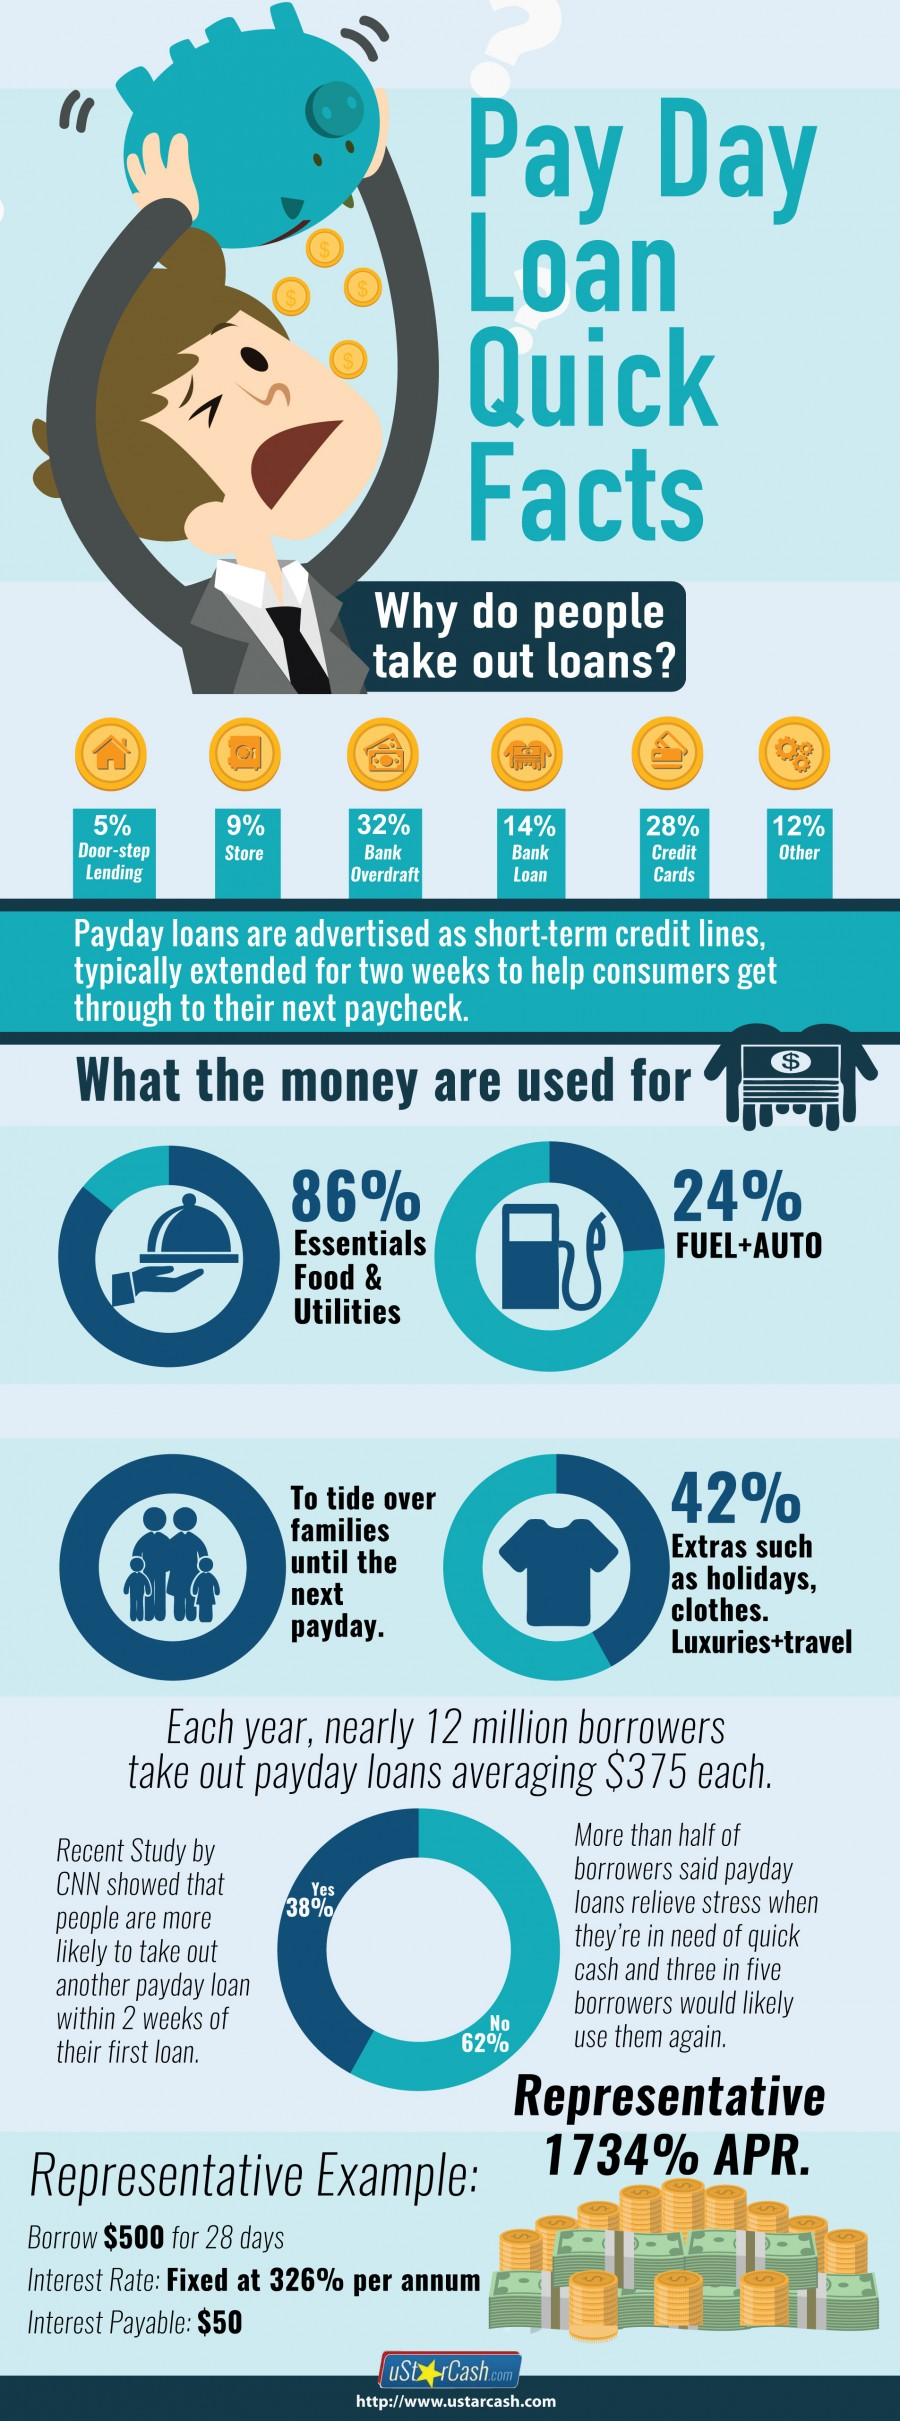 Payday Loan Facts Infographic